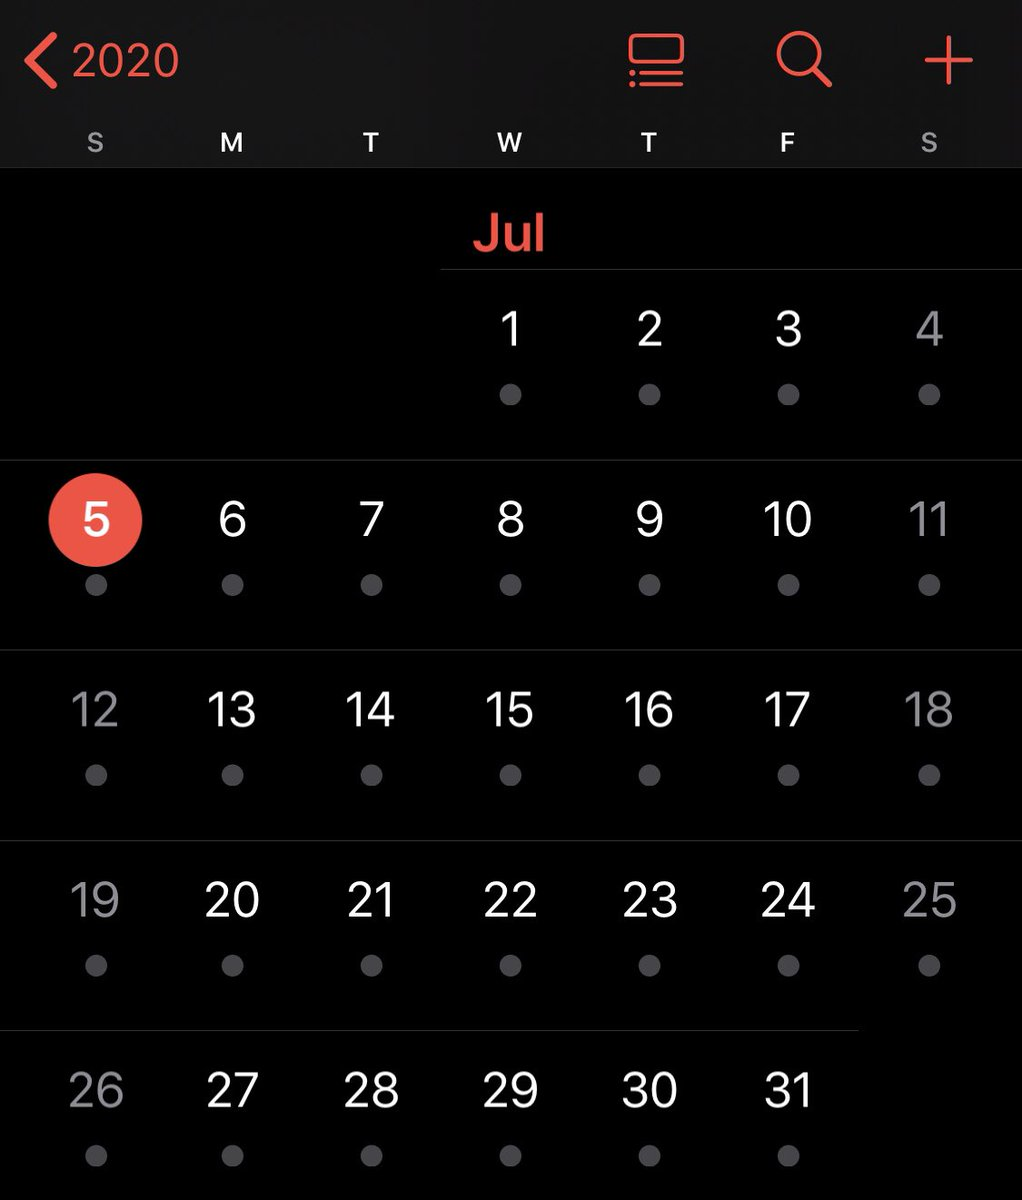 @jigendotnet 2nd choice! Have you looked at a calendar